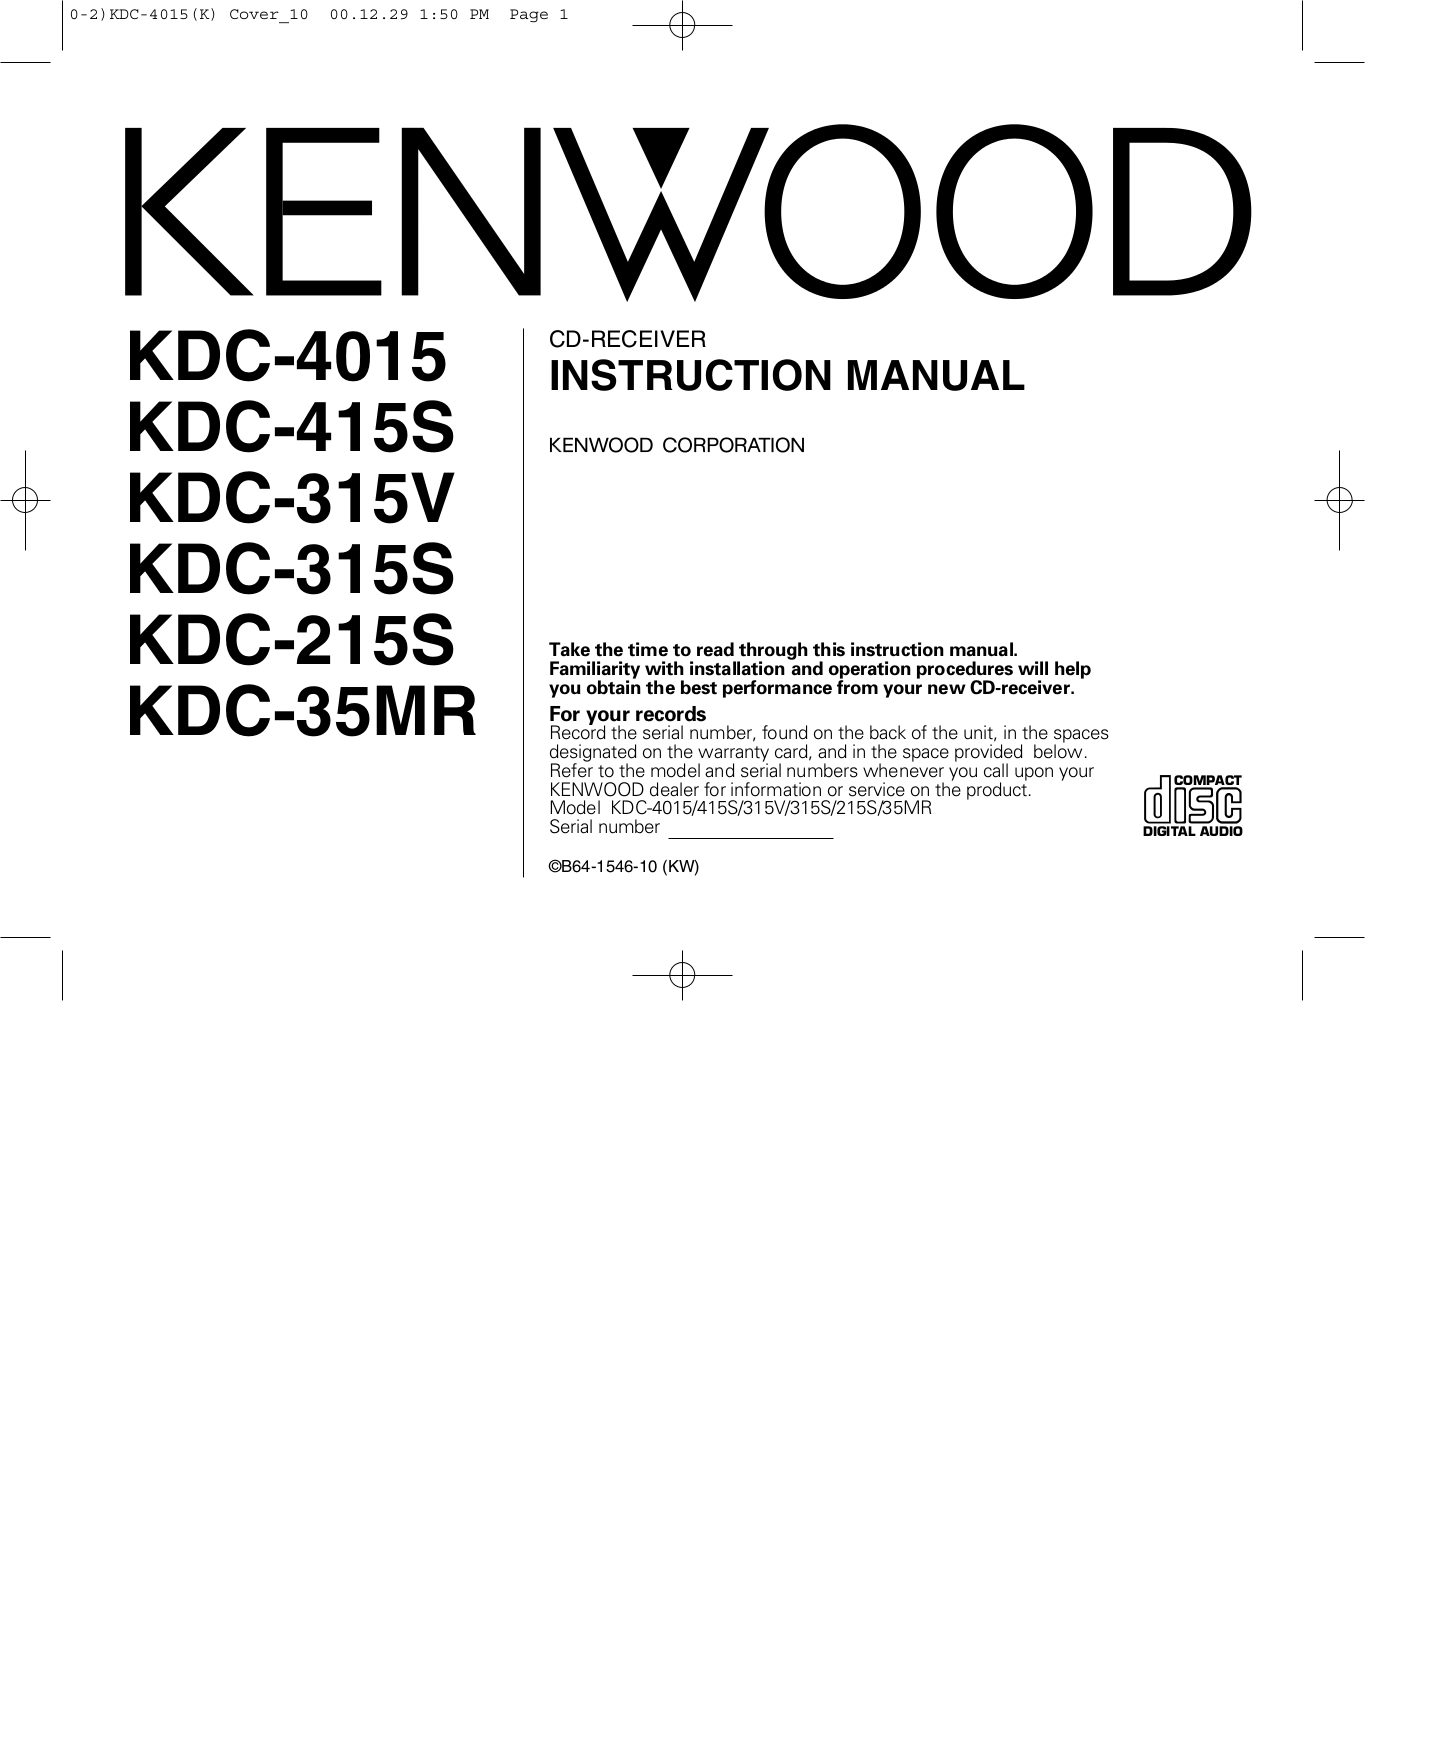 kenwood 617 dvd wiring harness kenwood instruction manual